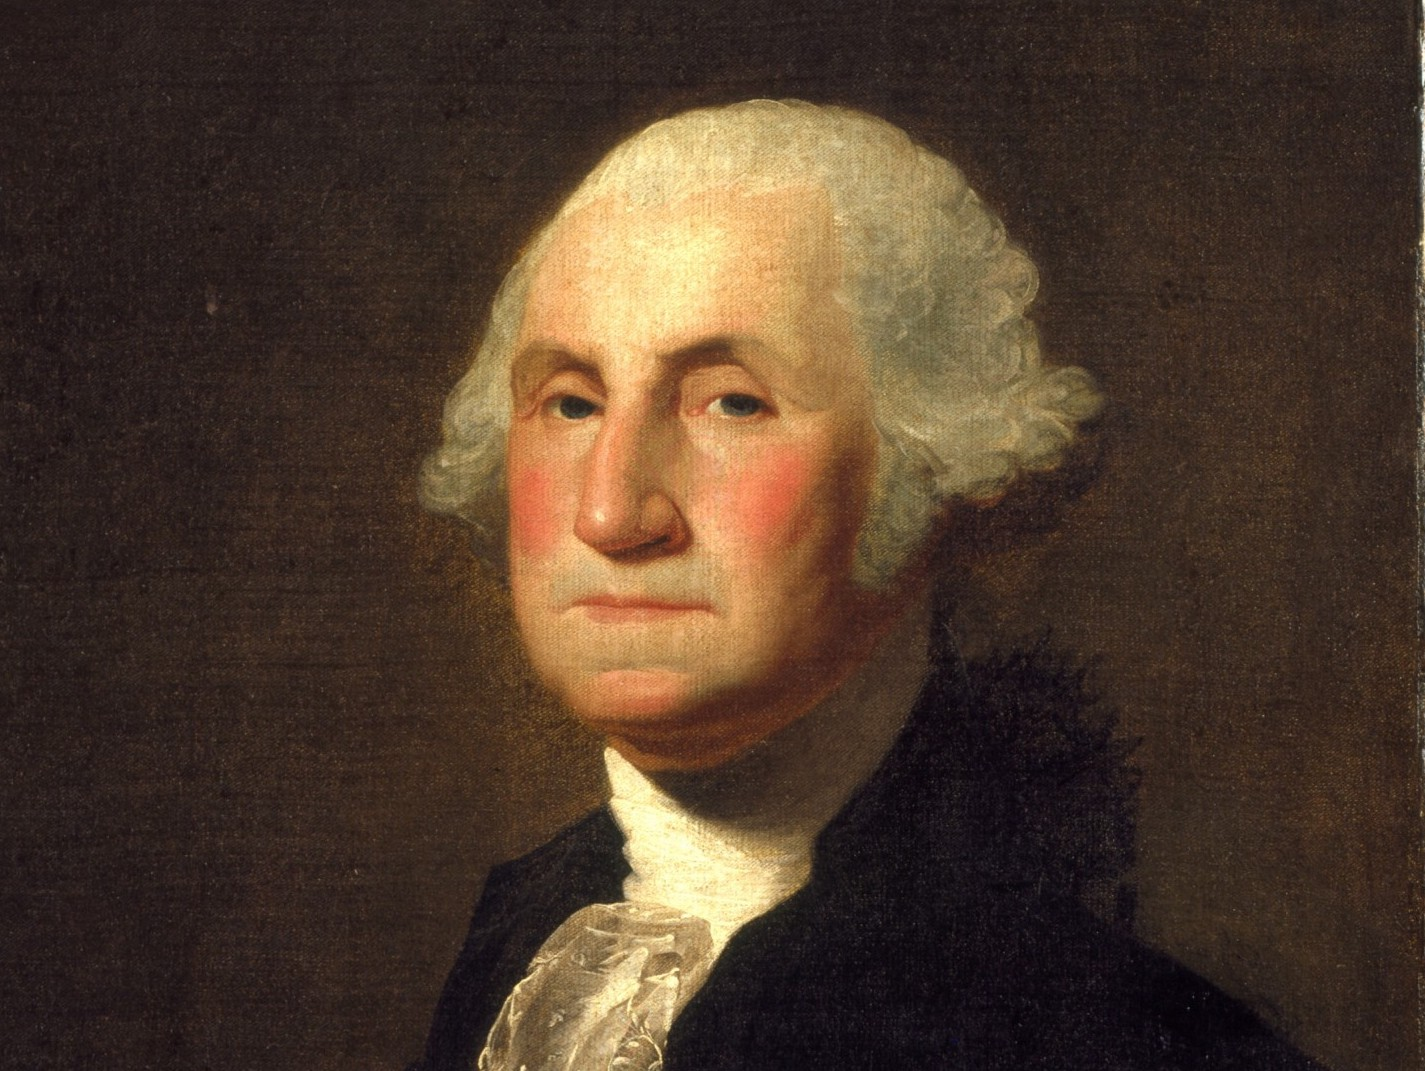 """Read George Washington's """"110 Rules of Civility"""": The Code of Decency That Guided America's First President"""